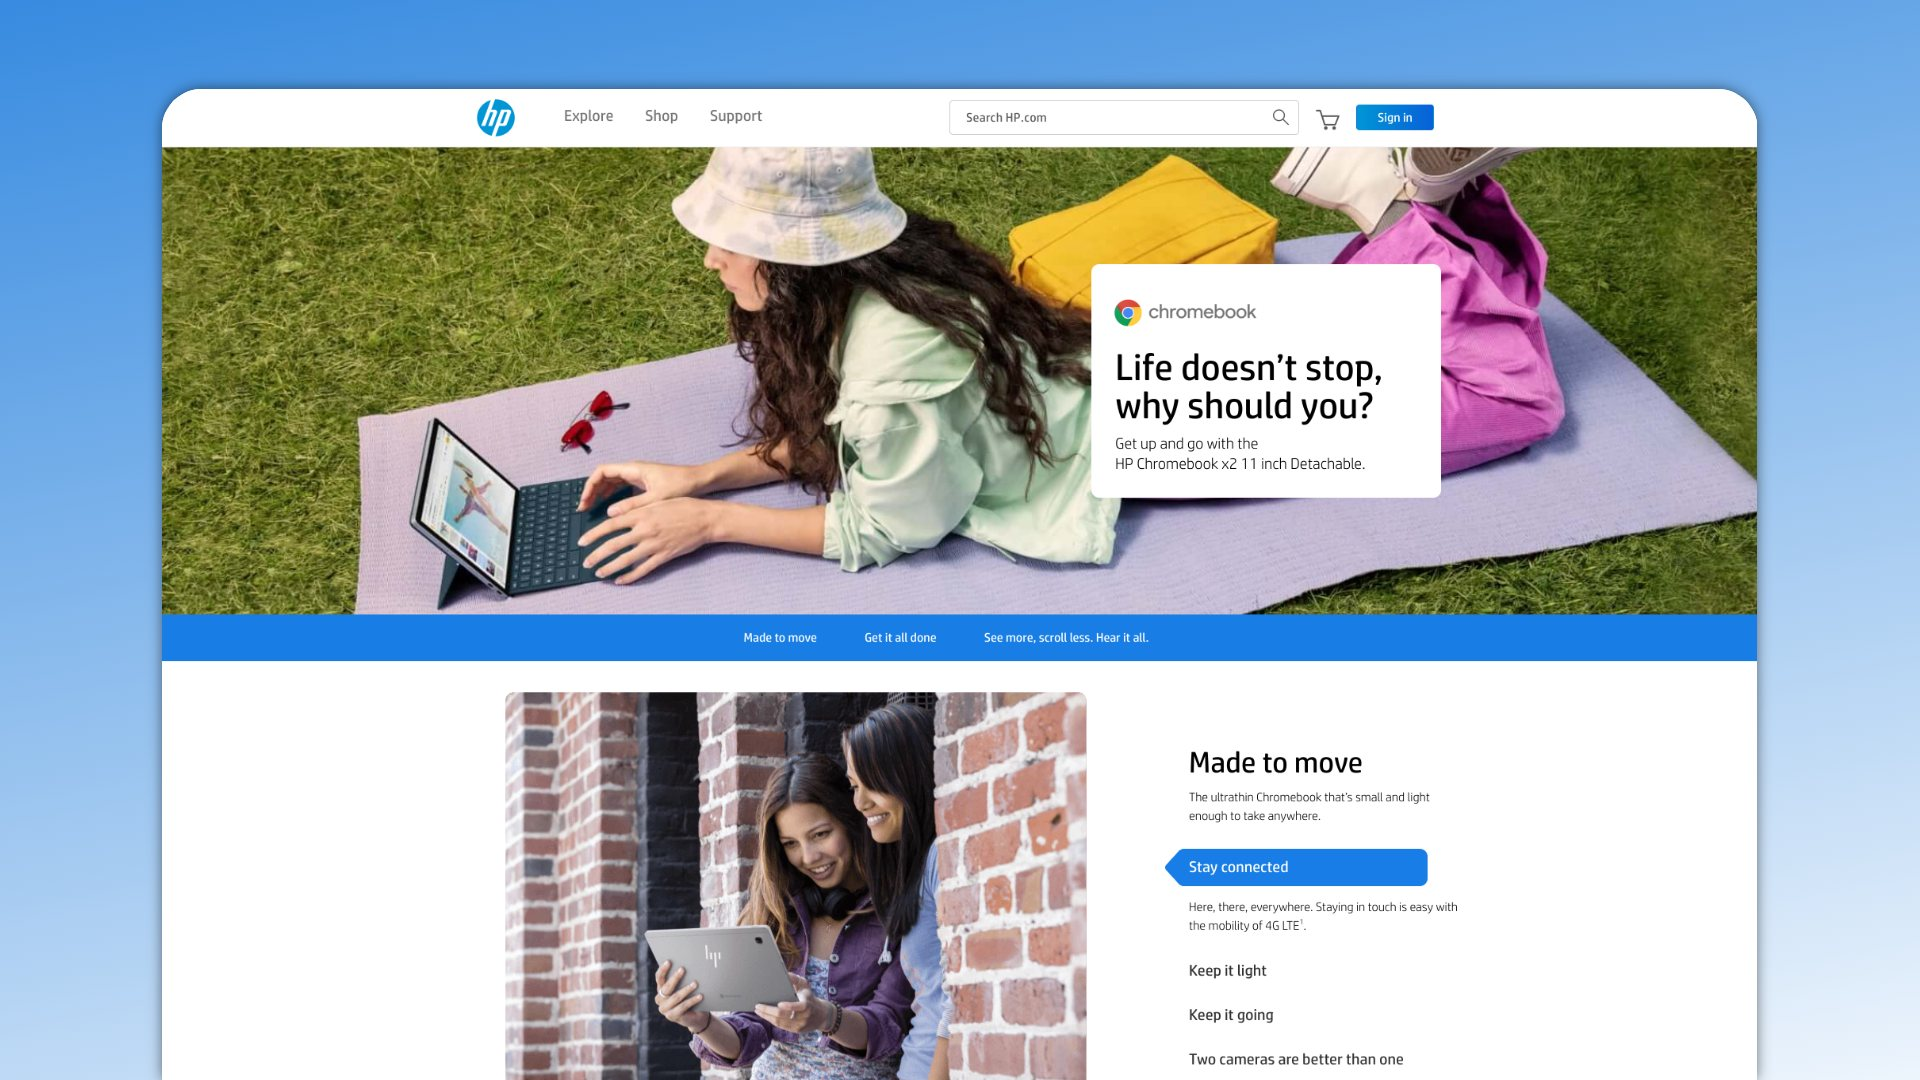 HP unveils a sweet landing page for the new Chromebook X2 11